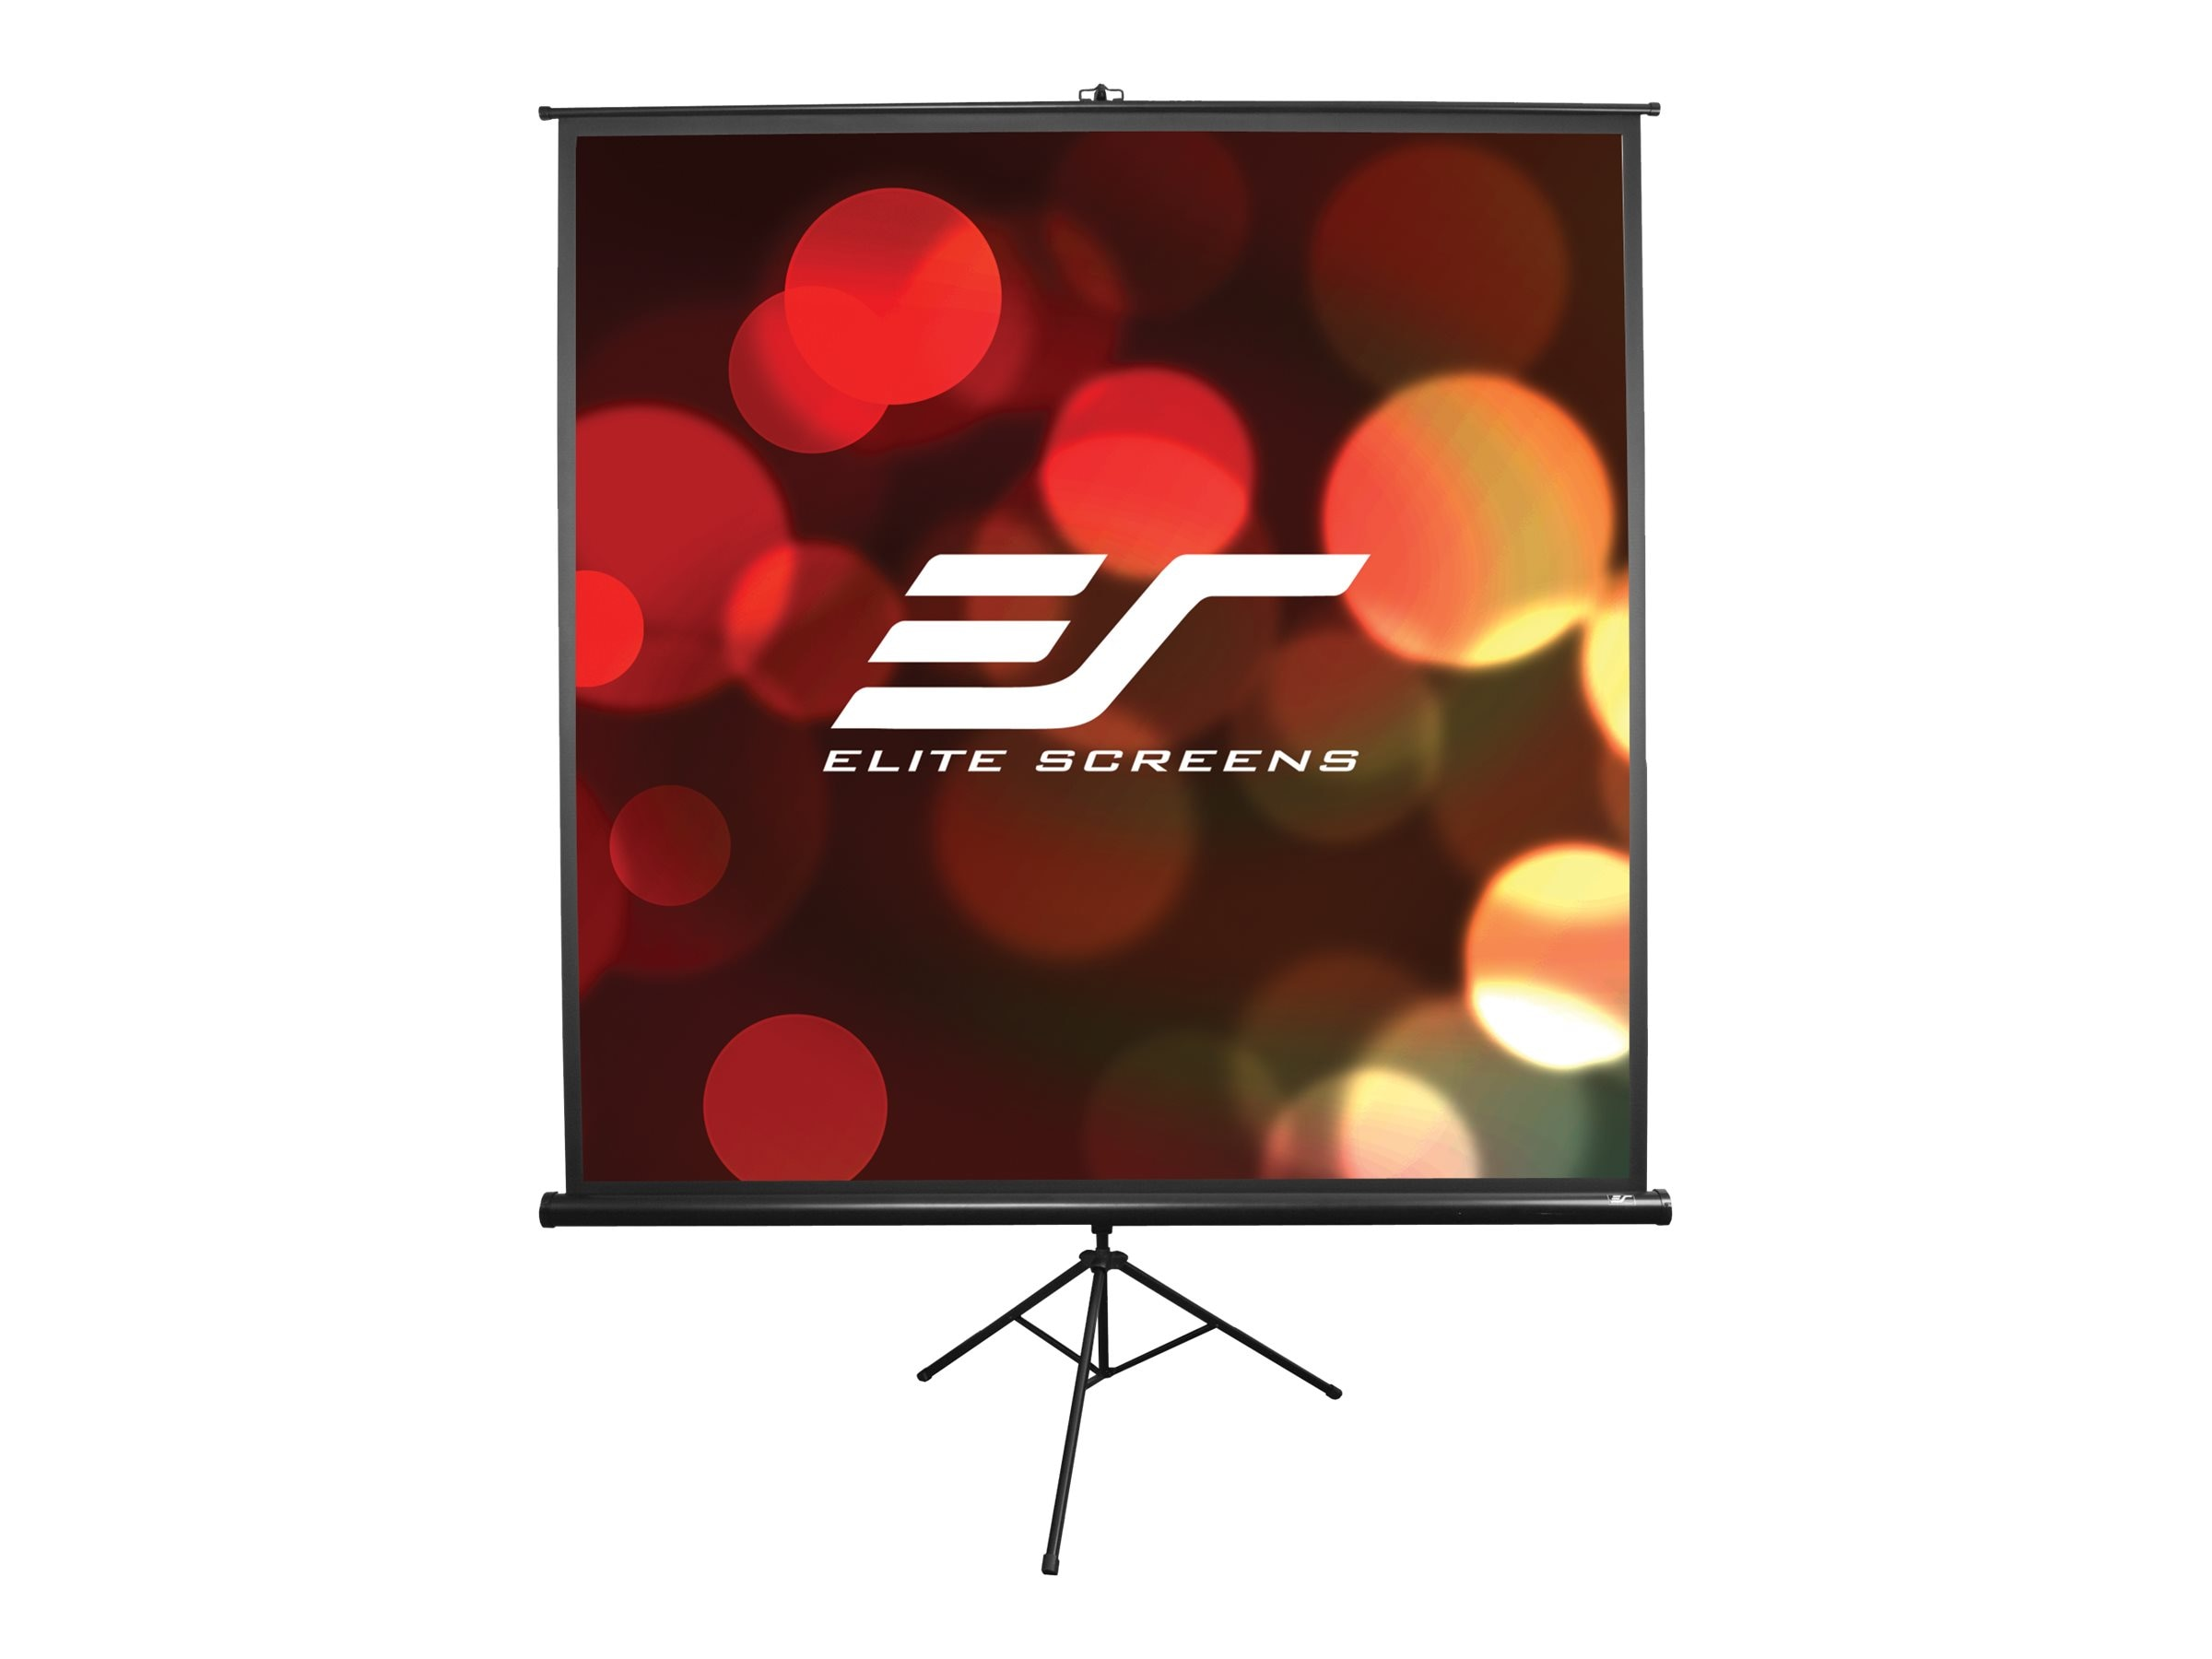 Elite Tripod Series Portable Projection Screen, MaxWhite, 4:3, 120in (Free Mount after MIR), T120UWV1, 9096379, Projector Screens